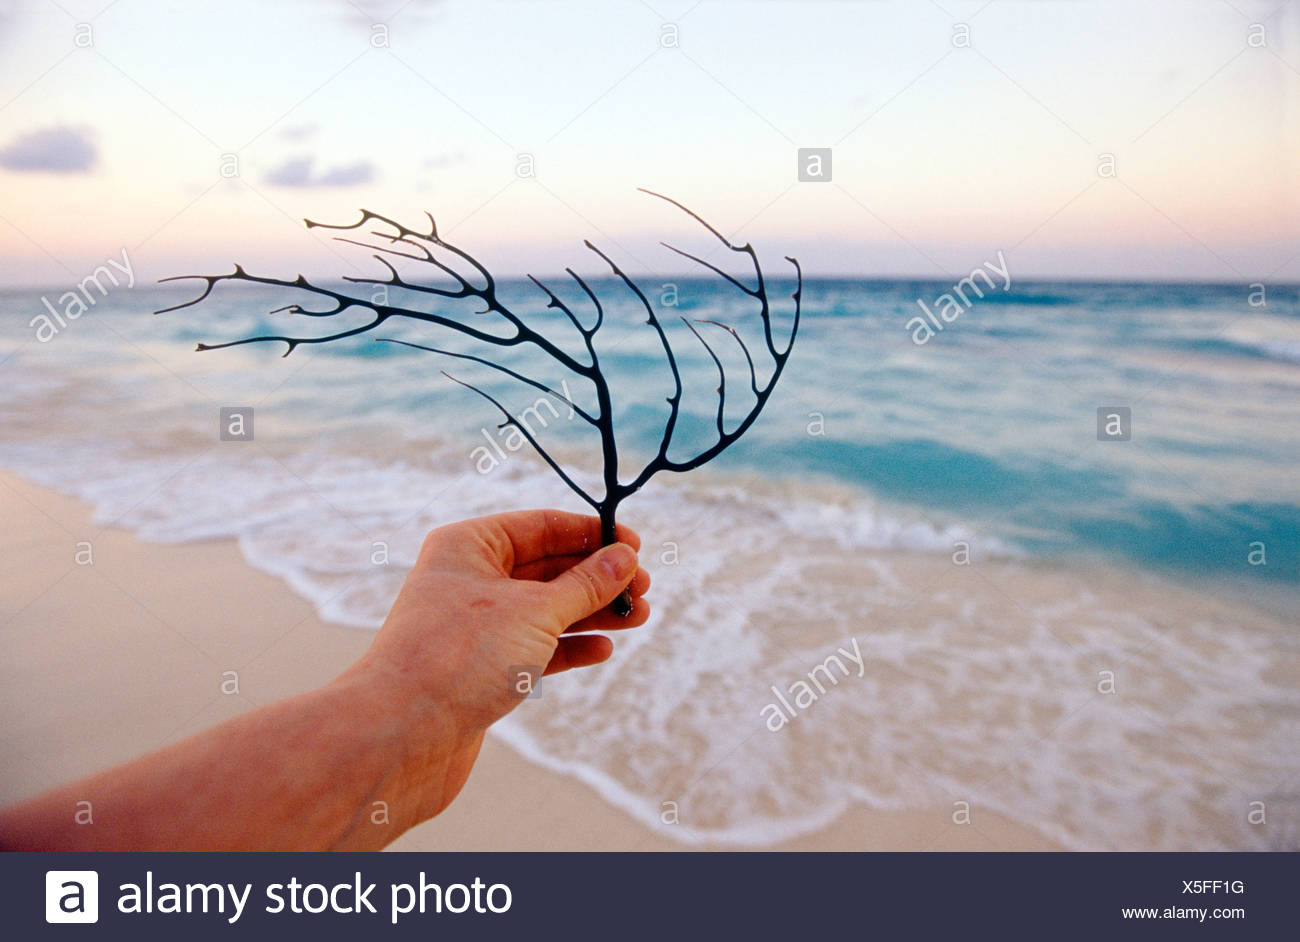 Hand Holding Branch on Beach, Tulum, Mexico - Stock Image